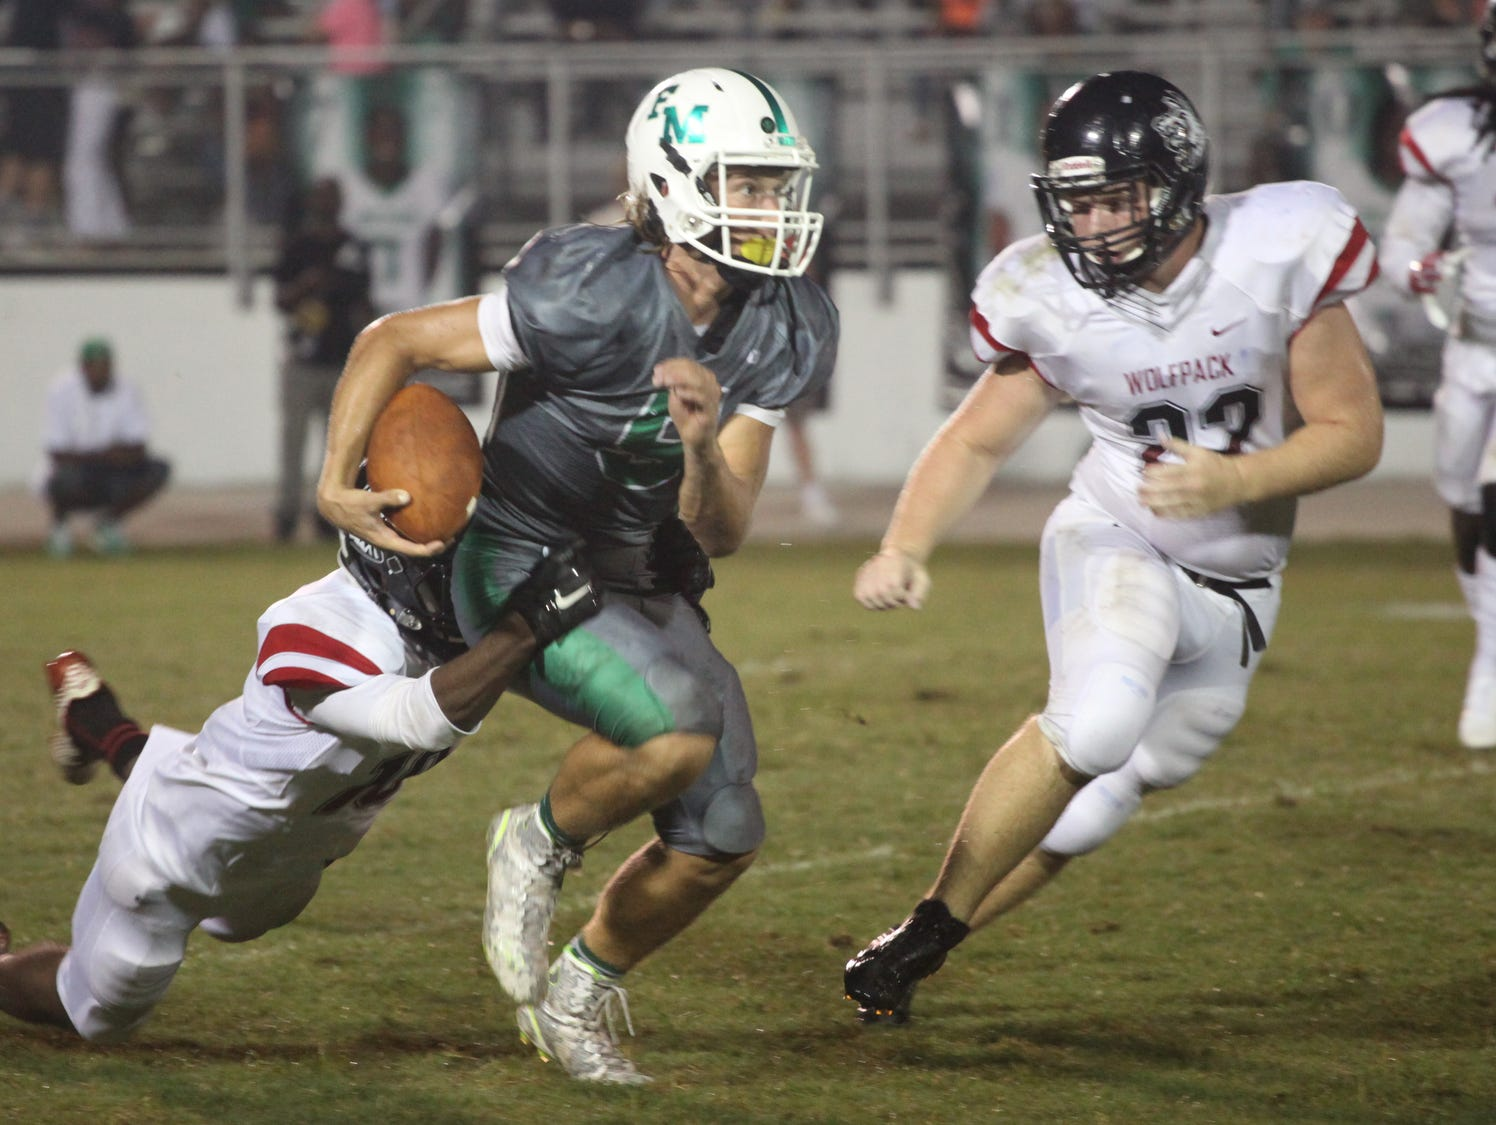 South Fort Myers competes with Fort Myers during a game on Friday night.